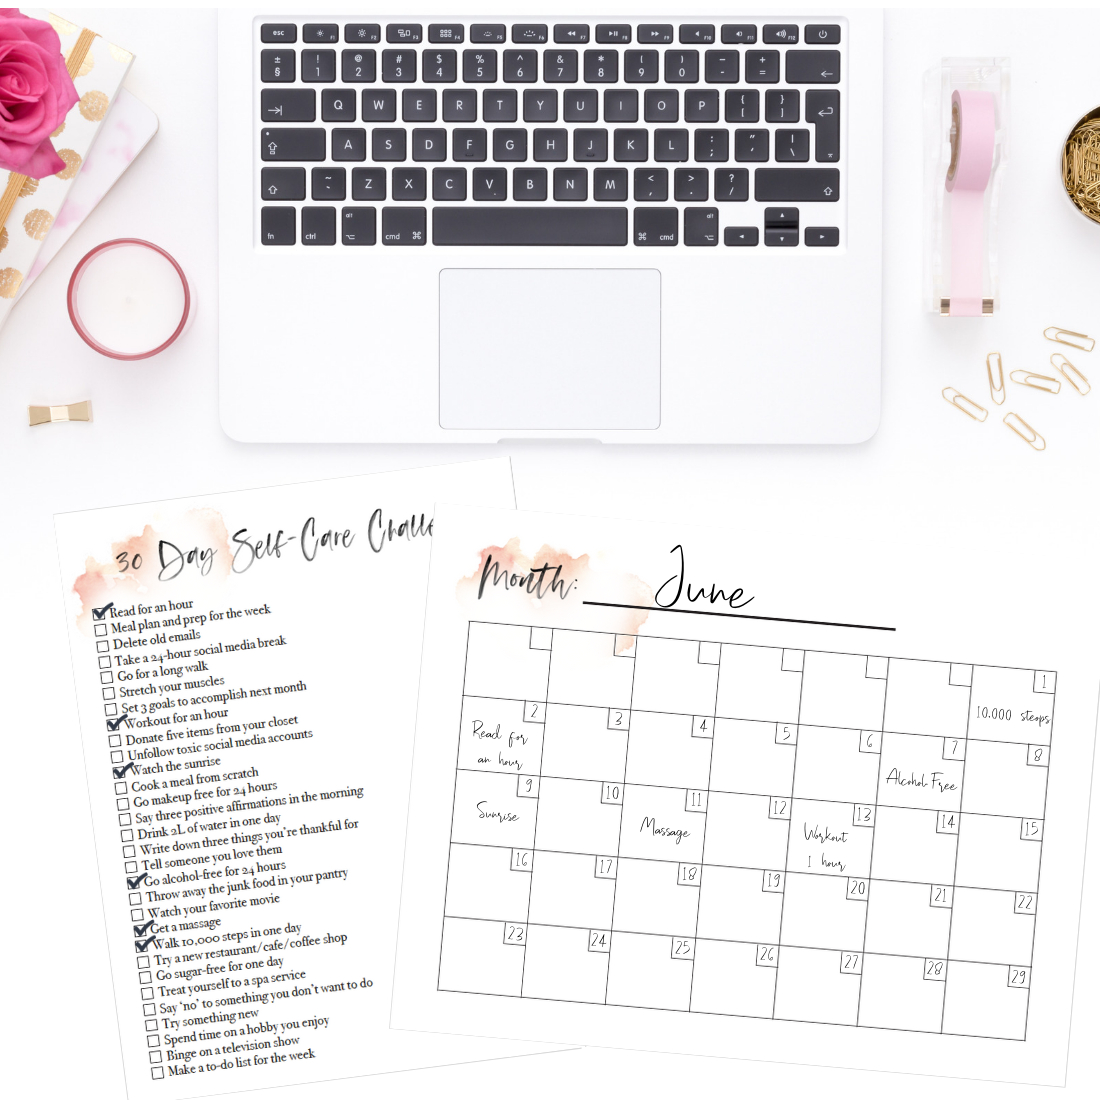 Easy 30Day Selfcare Challenge (Free Checklist + Blank with 30 Day Calendar Blank